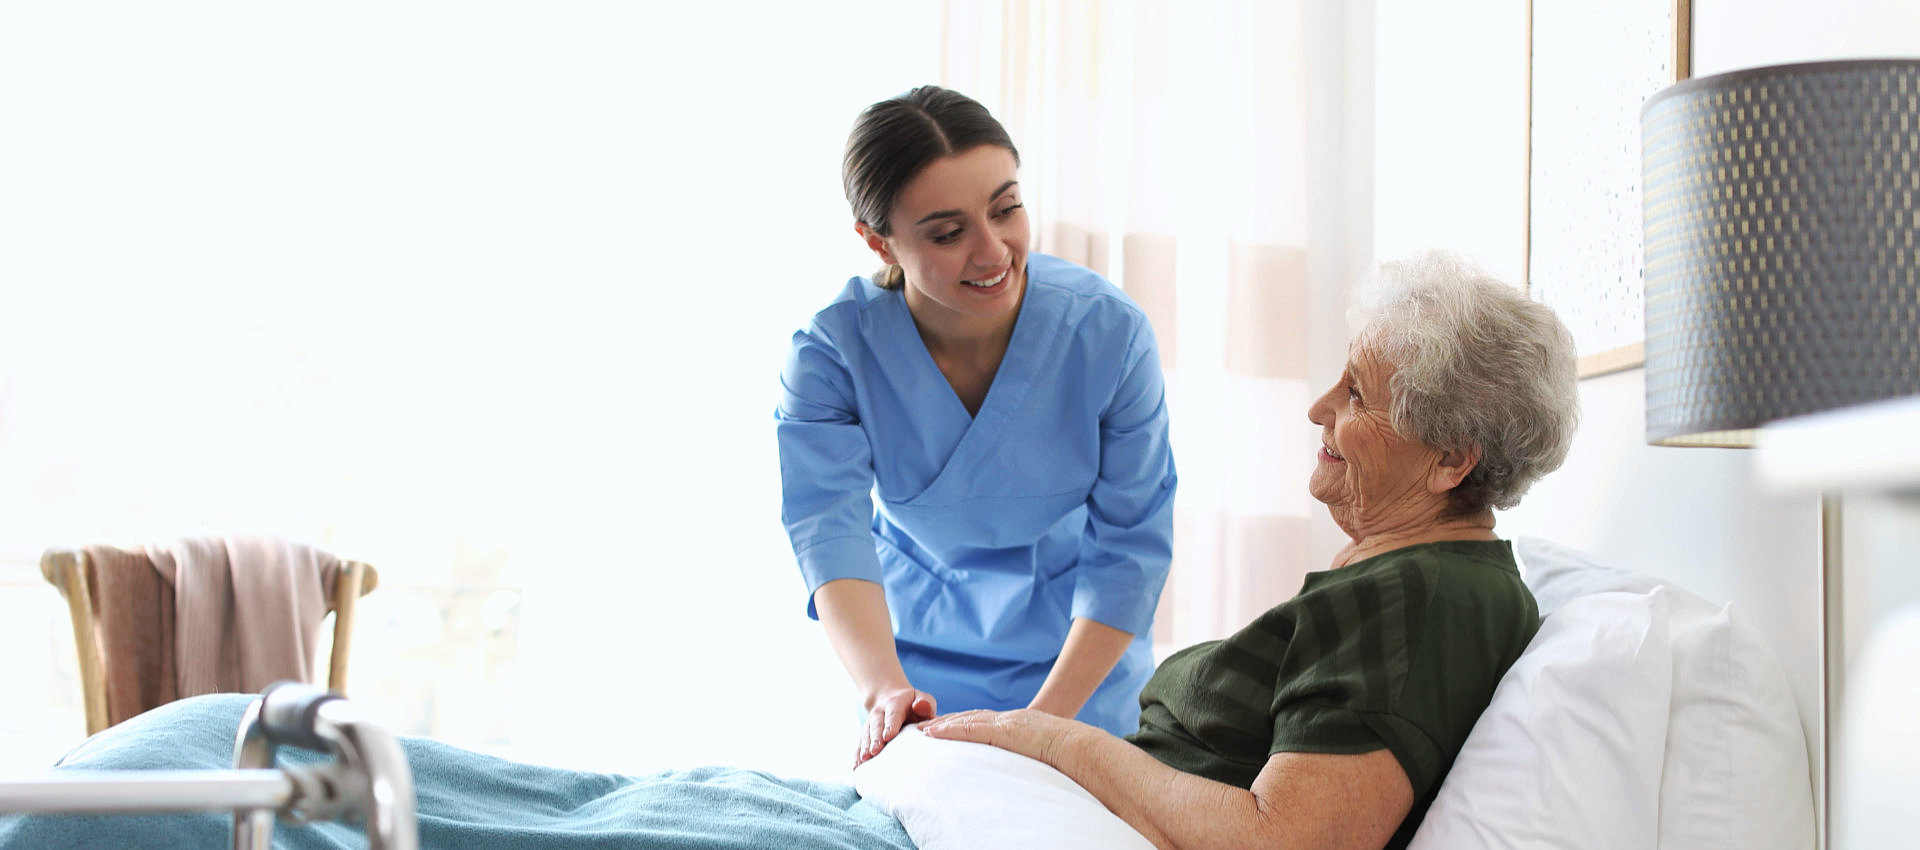 an elderly woman on a bed with a caregiver woman